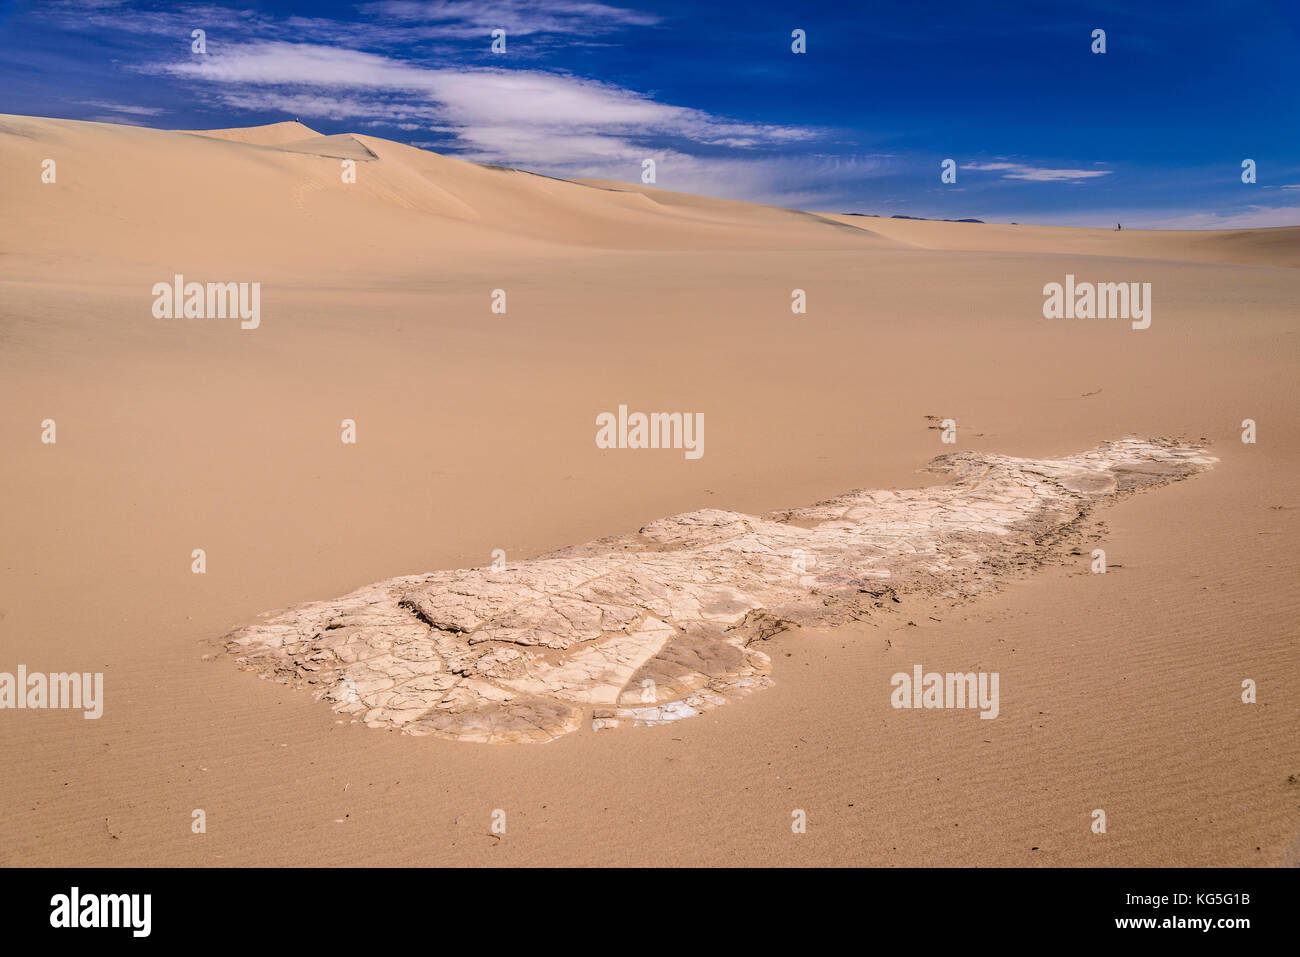 The USA, California, Death Valley National Park, Stovepipe Wells, Mesquite Flat Sand Dunes - Stock Image